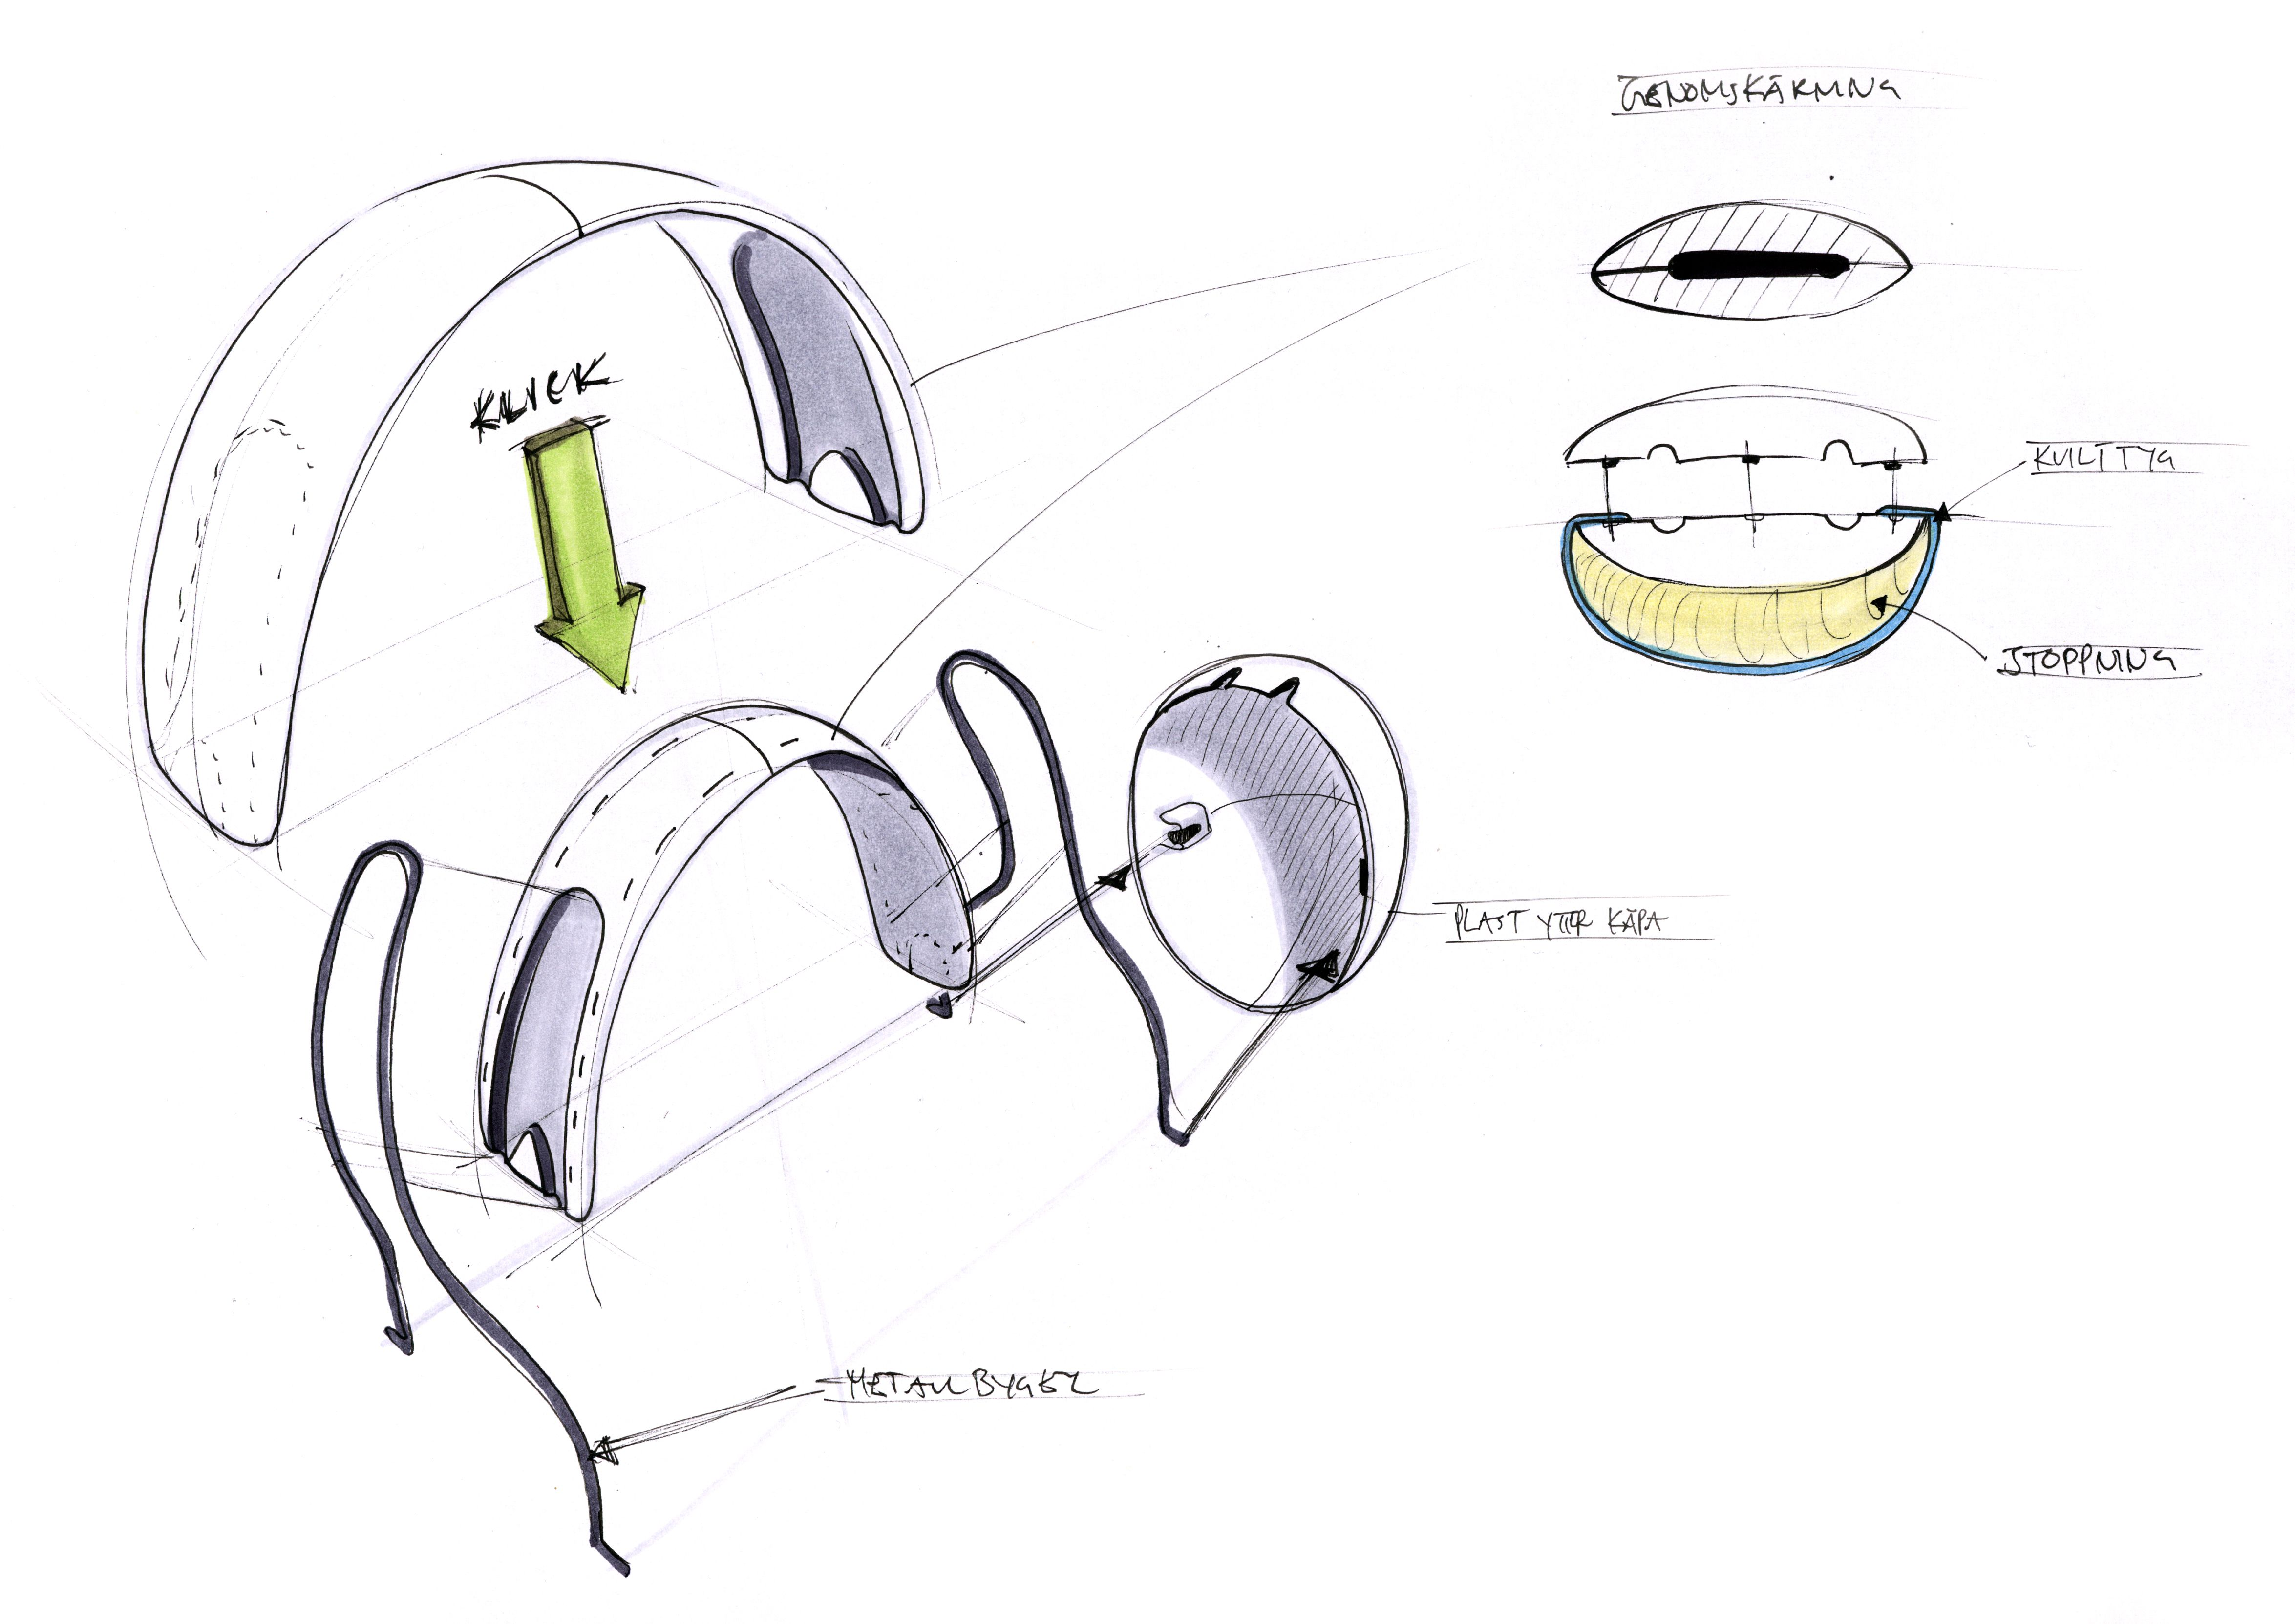 medium resolution of exploded view headphone project sketch